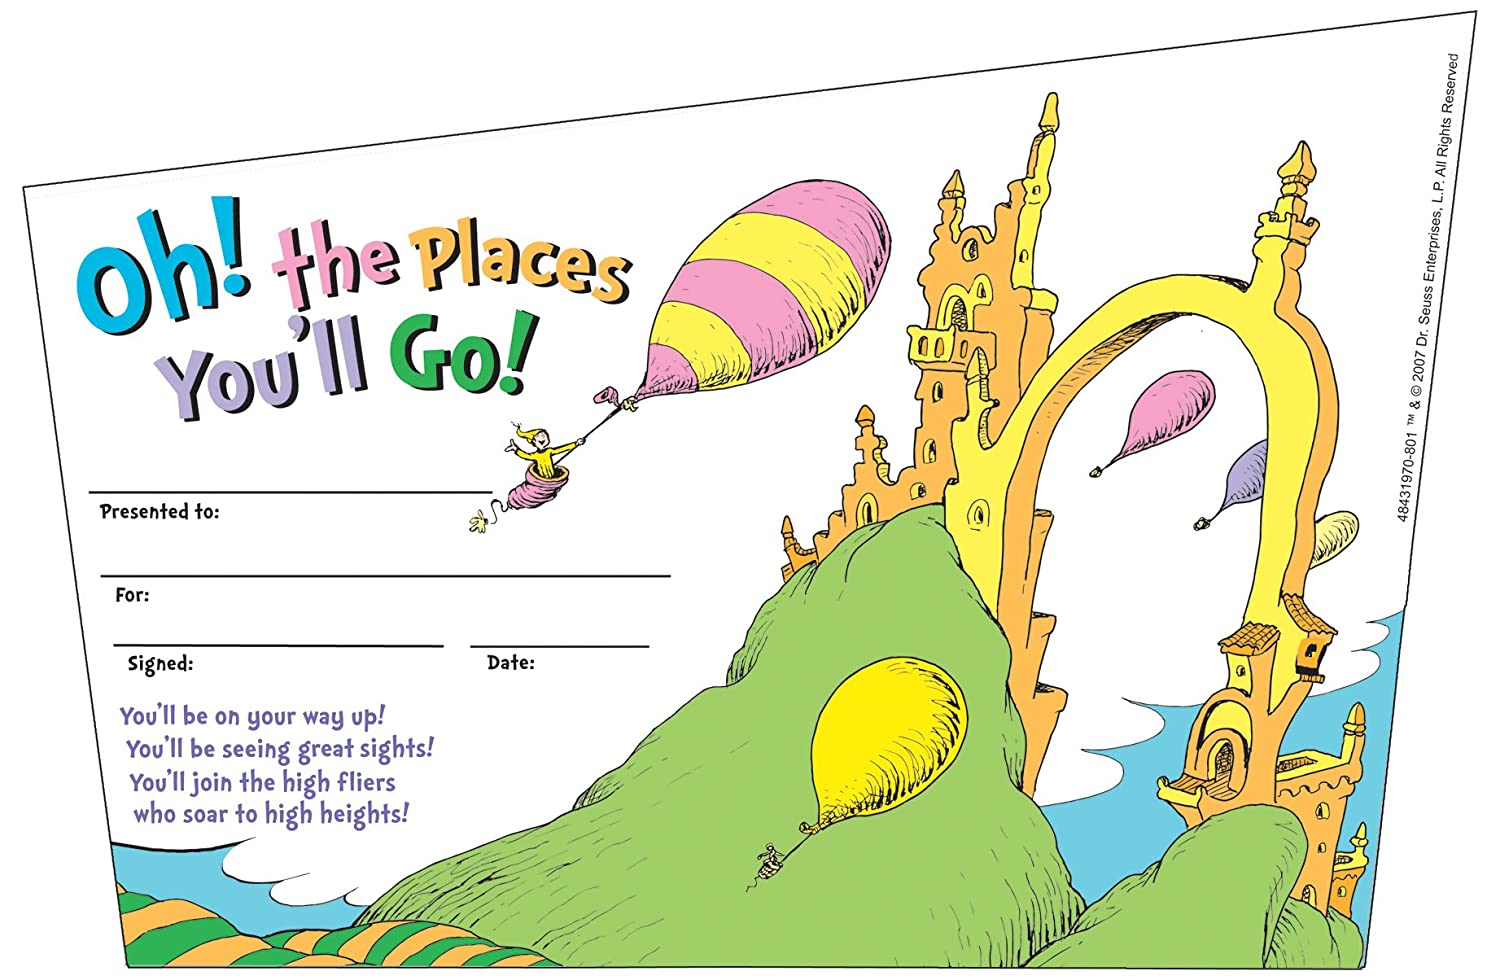 picture about Oh the Places You'll Go Printable called Eureka Again in direction of College Dr. Seuss, Oh, The Puts Youll Shift Acceptance Awards for Children, 36laptop. 8.5 W x 5.5 H